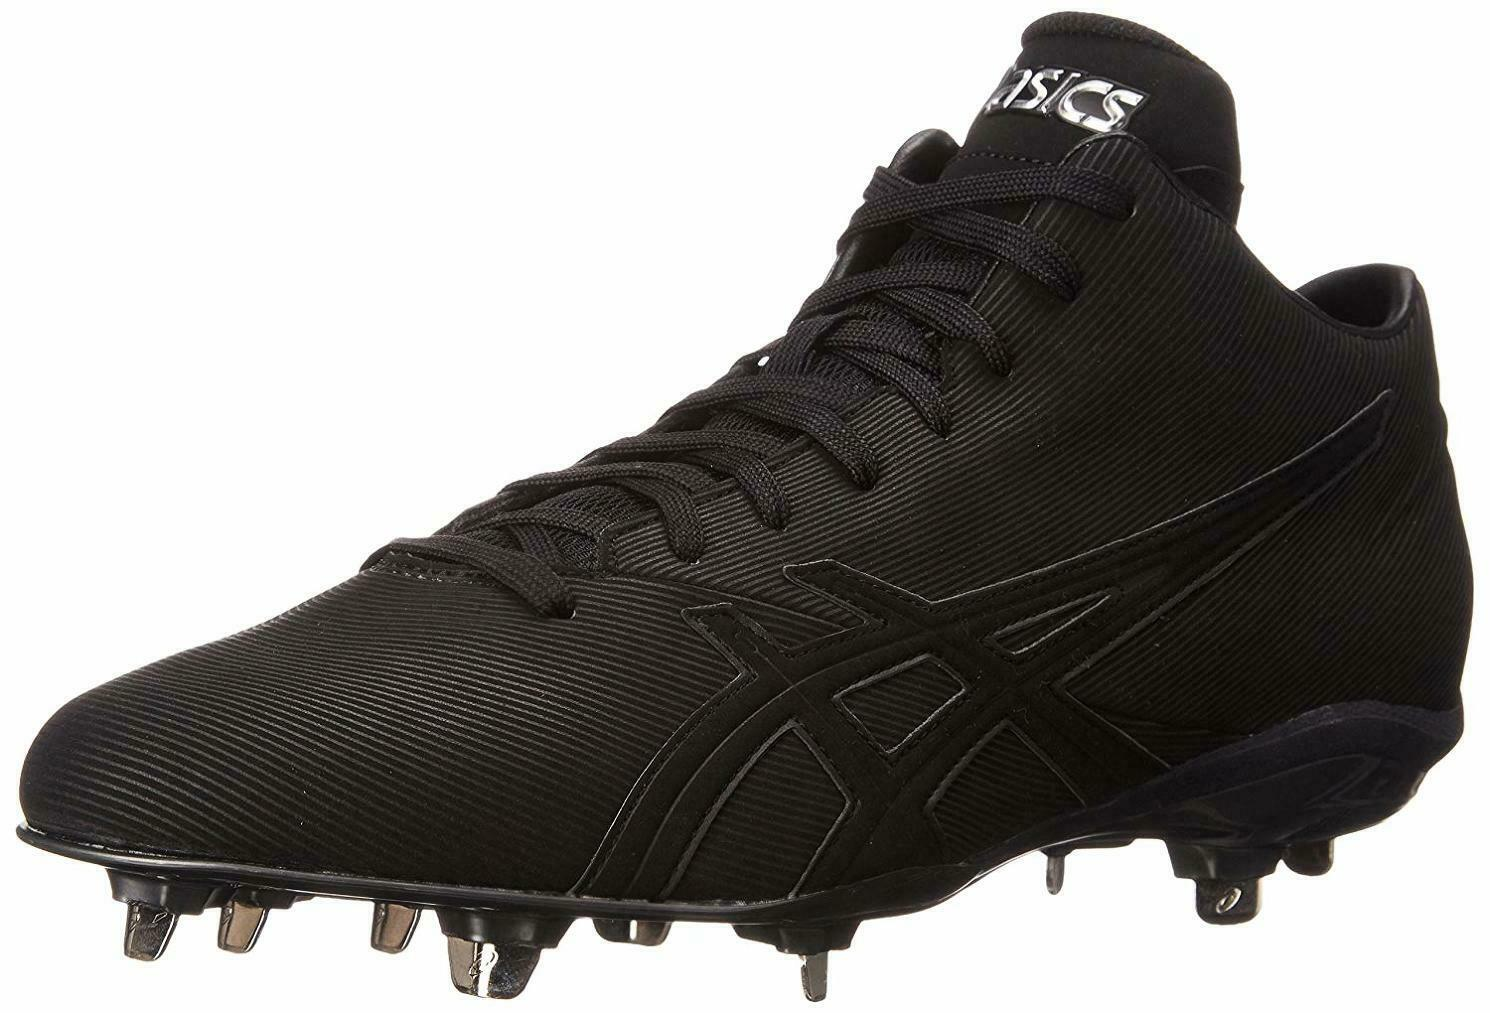 Homme ASICS crossvictor QT baseball chaussures-Choisir Taille couleur